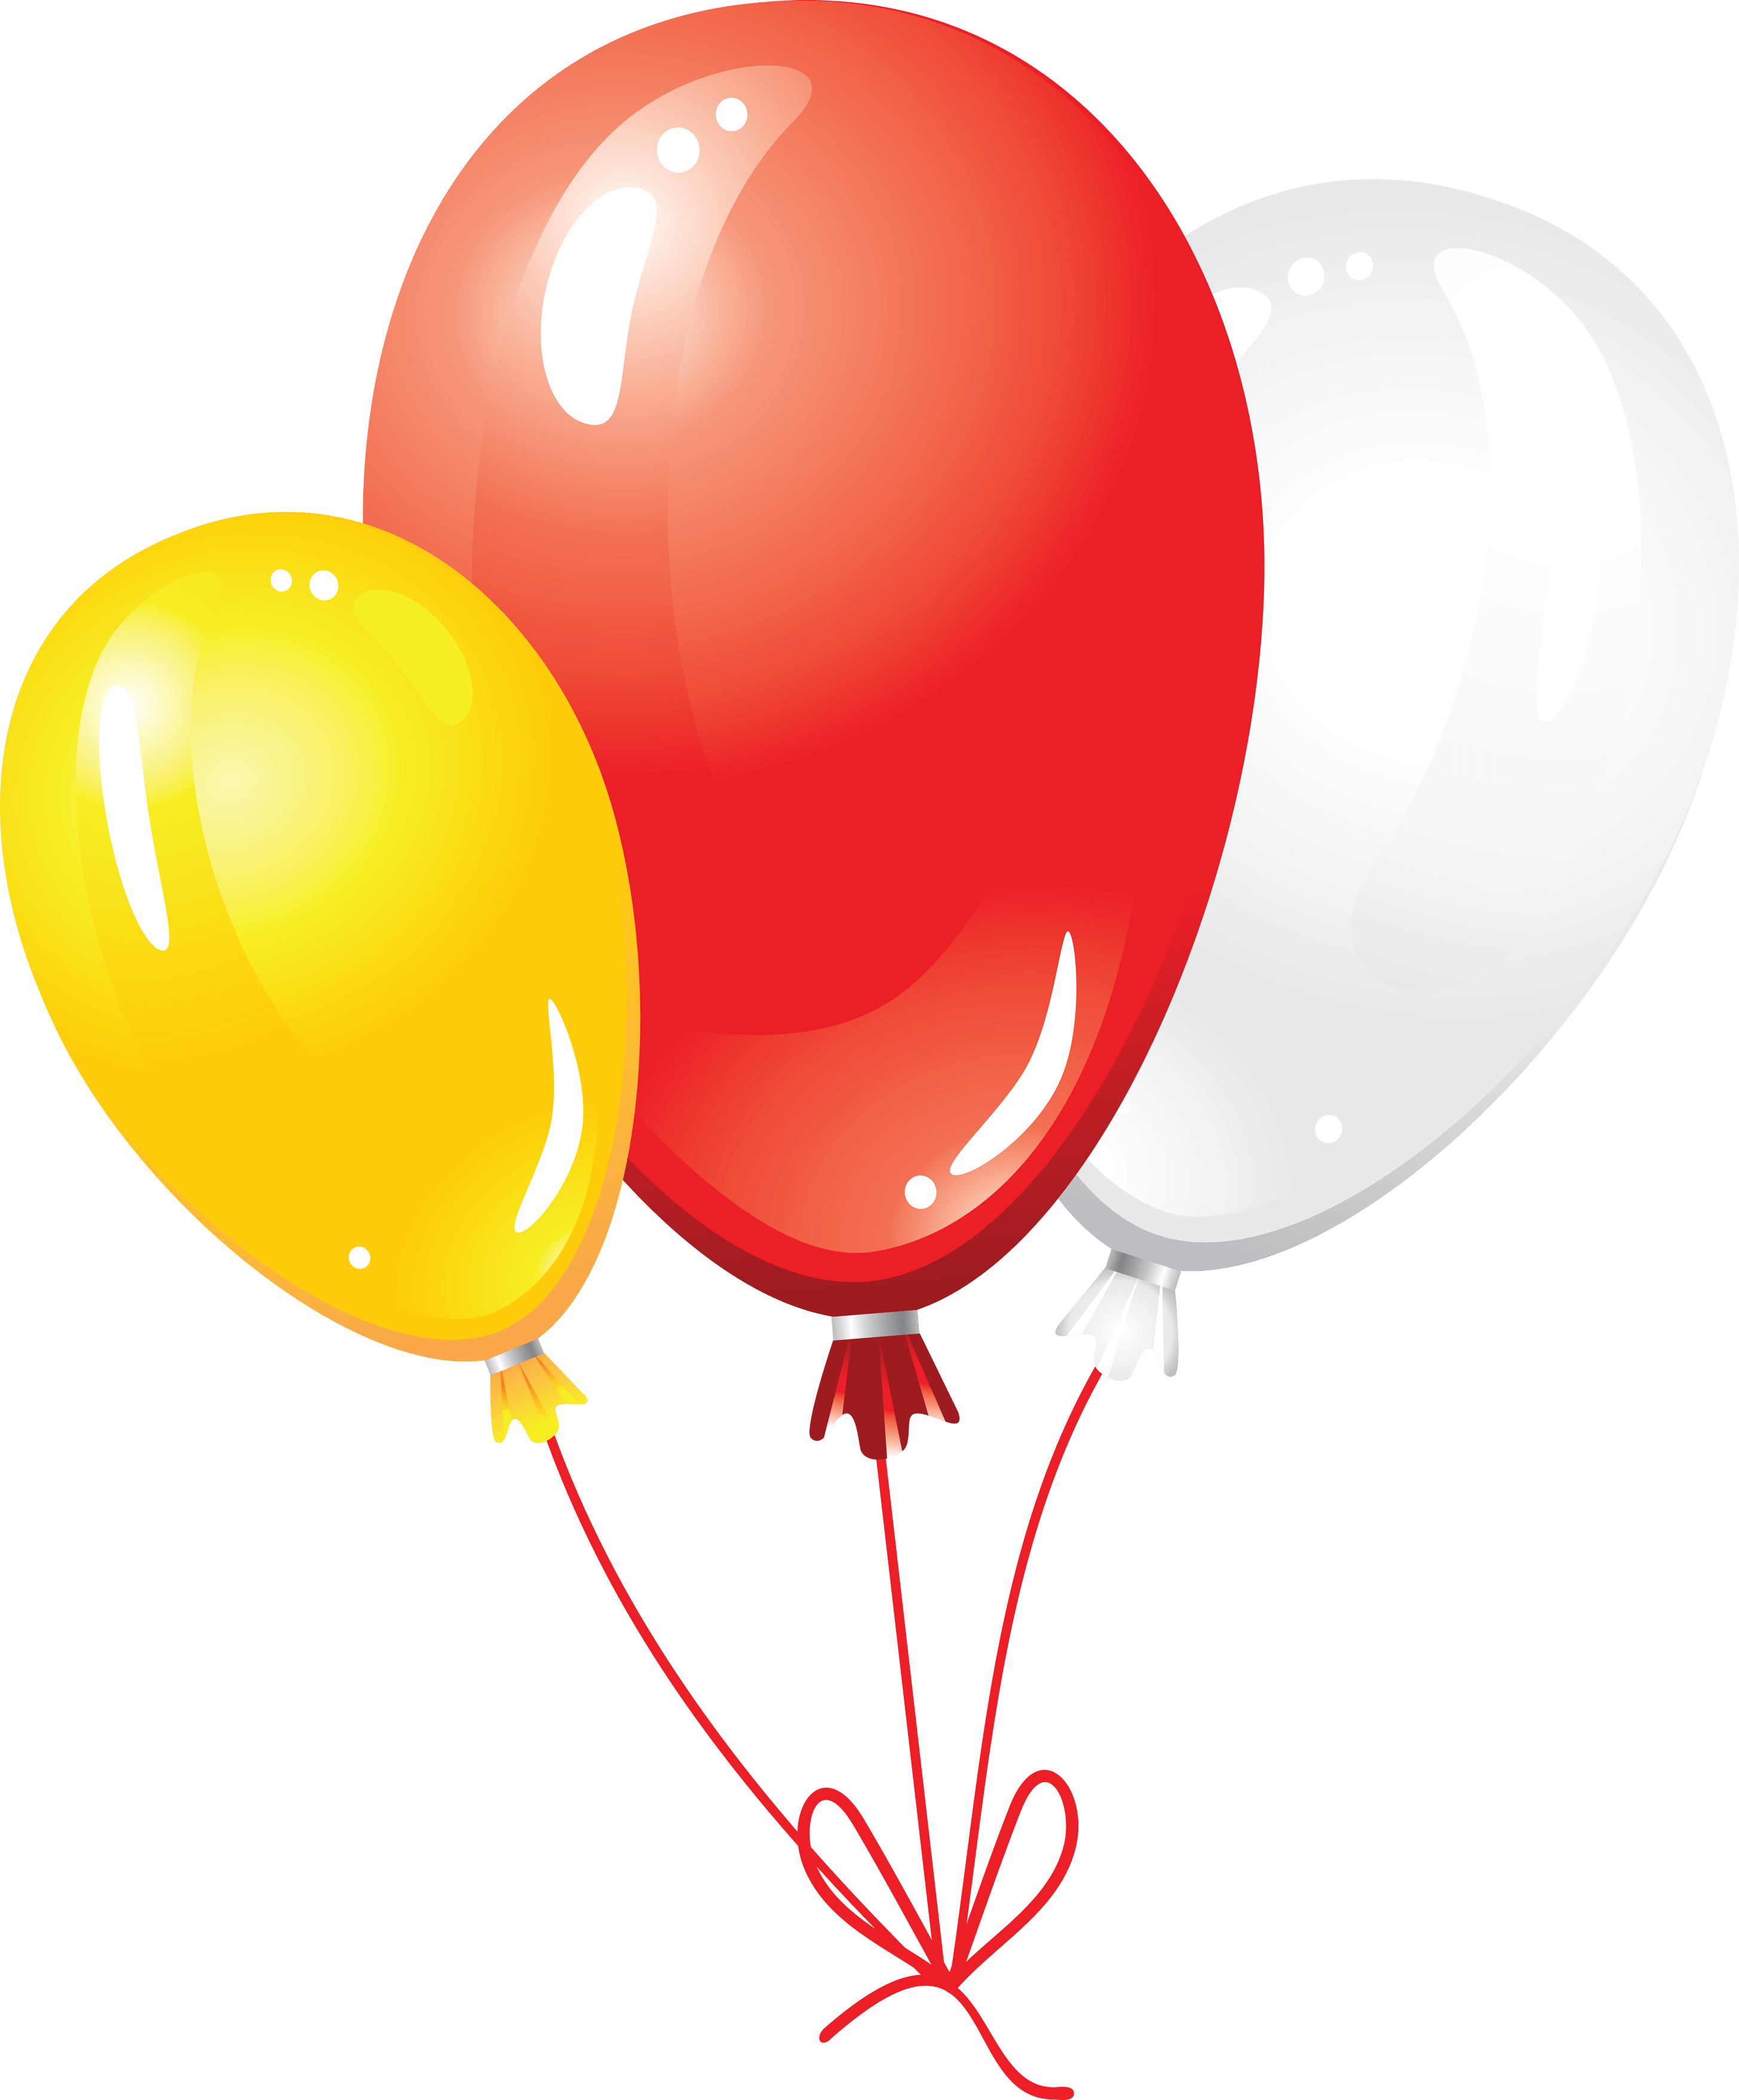 Balloon Png Image PNG Image